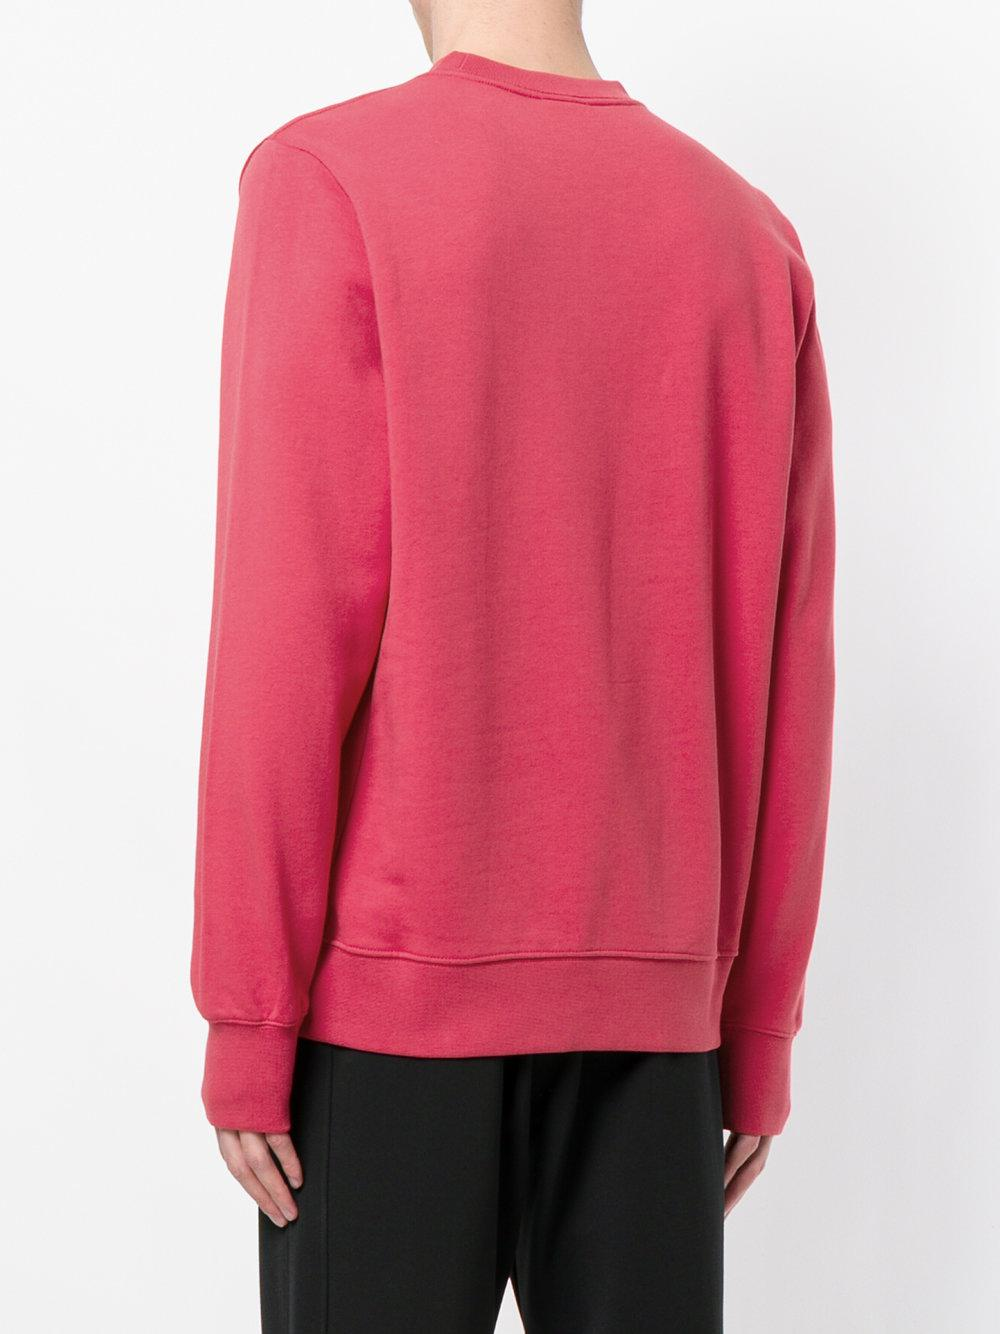 PS by Paul Smith Cotton Embroidered Dino Sweatshirt in Pink & Purple (Pink) for Men